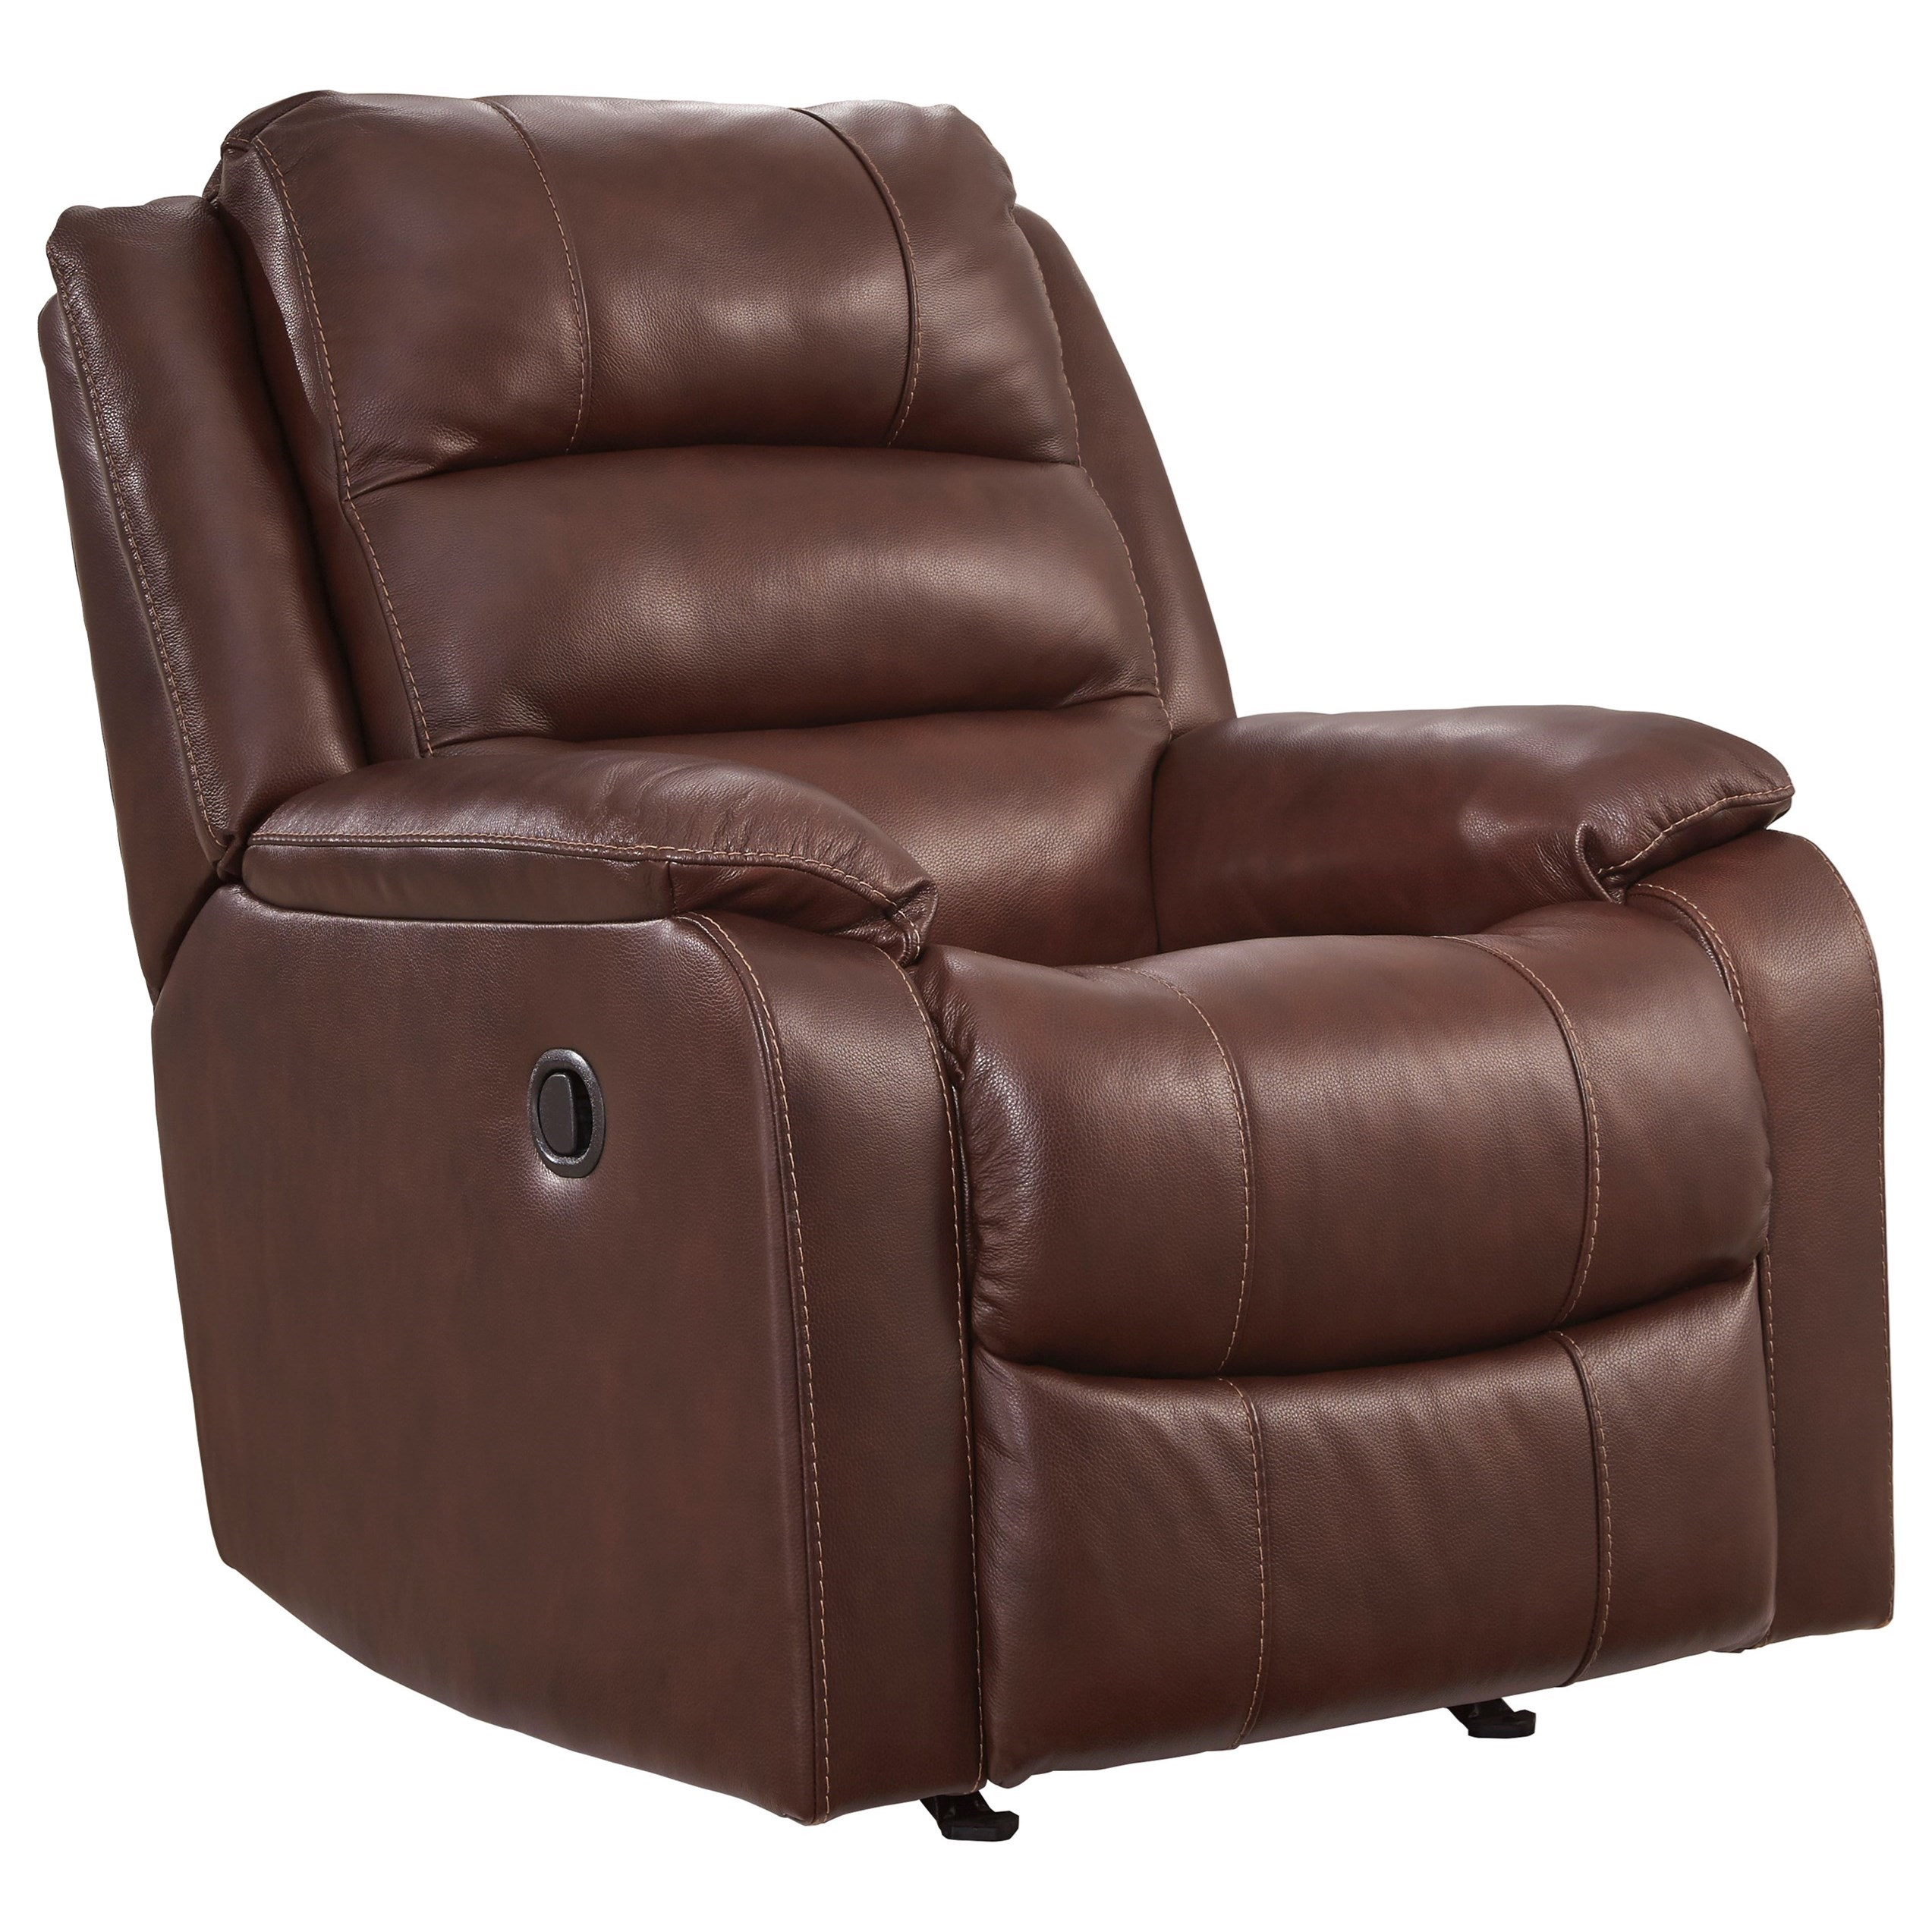 Wylesburg Rocker Recliner by Ashley (Signature Design) at Johnny Janosik